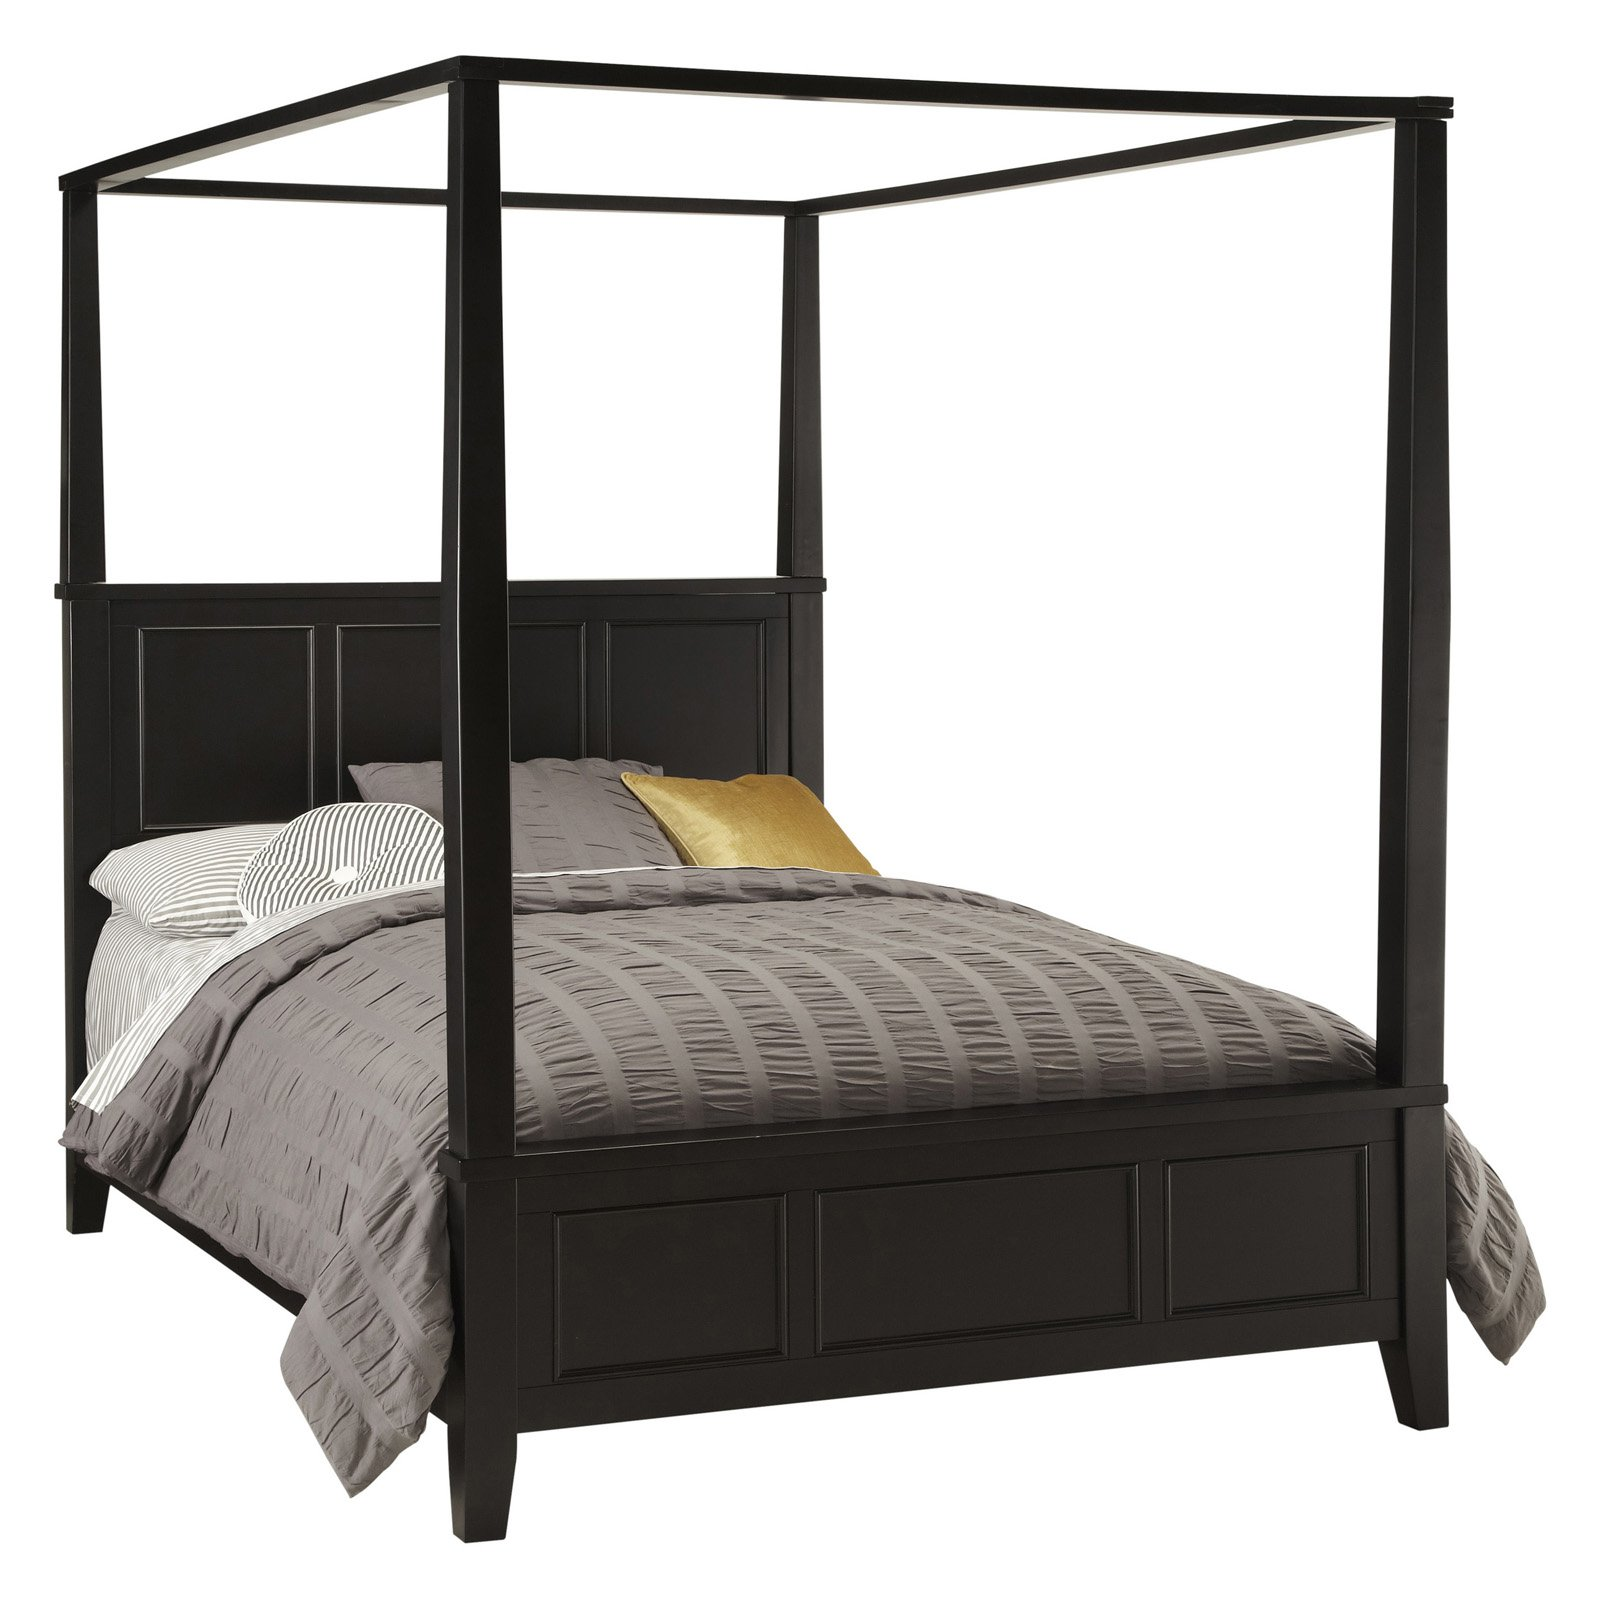 Home Styles Bedford Queen Canopy Bed, Black